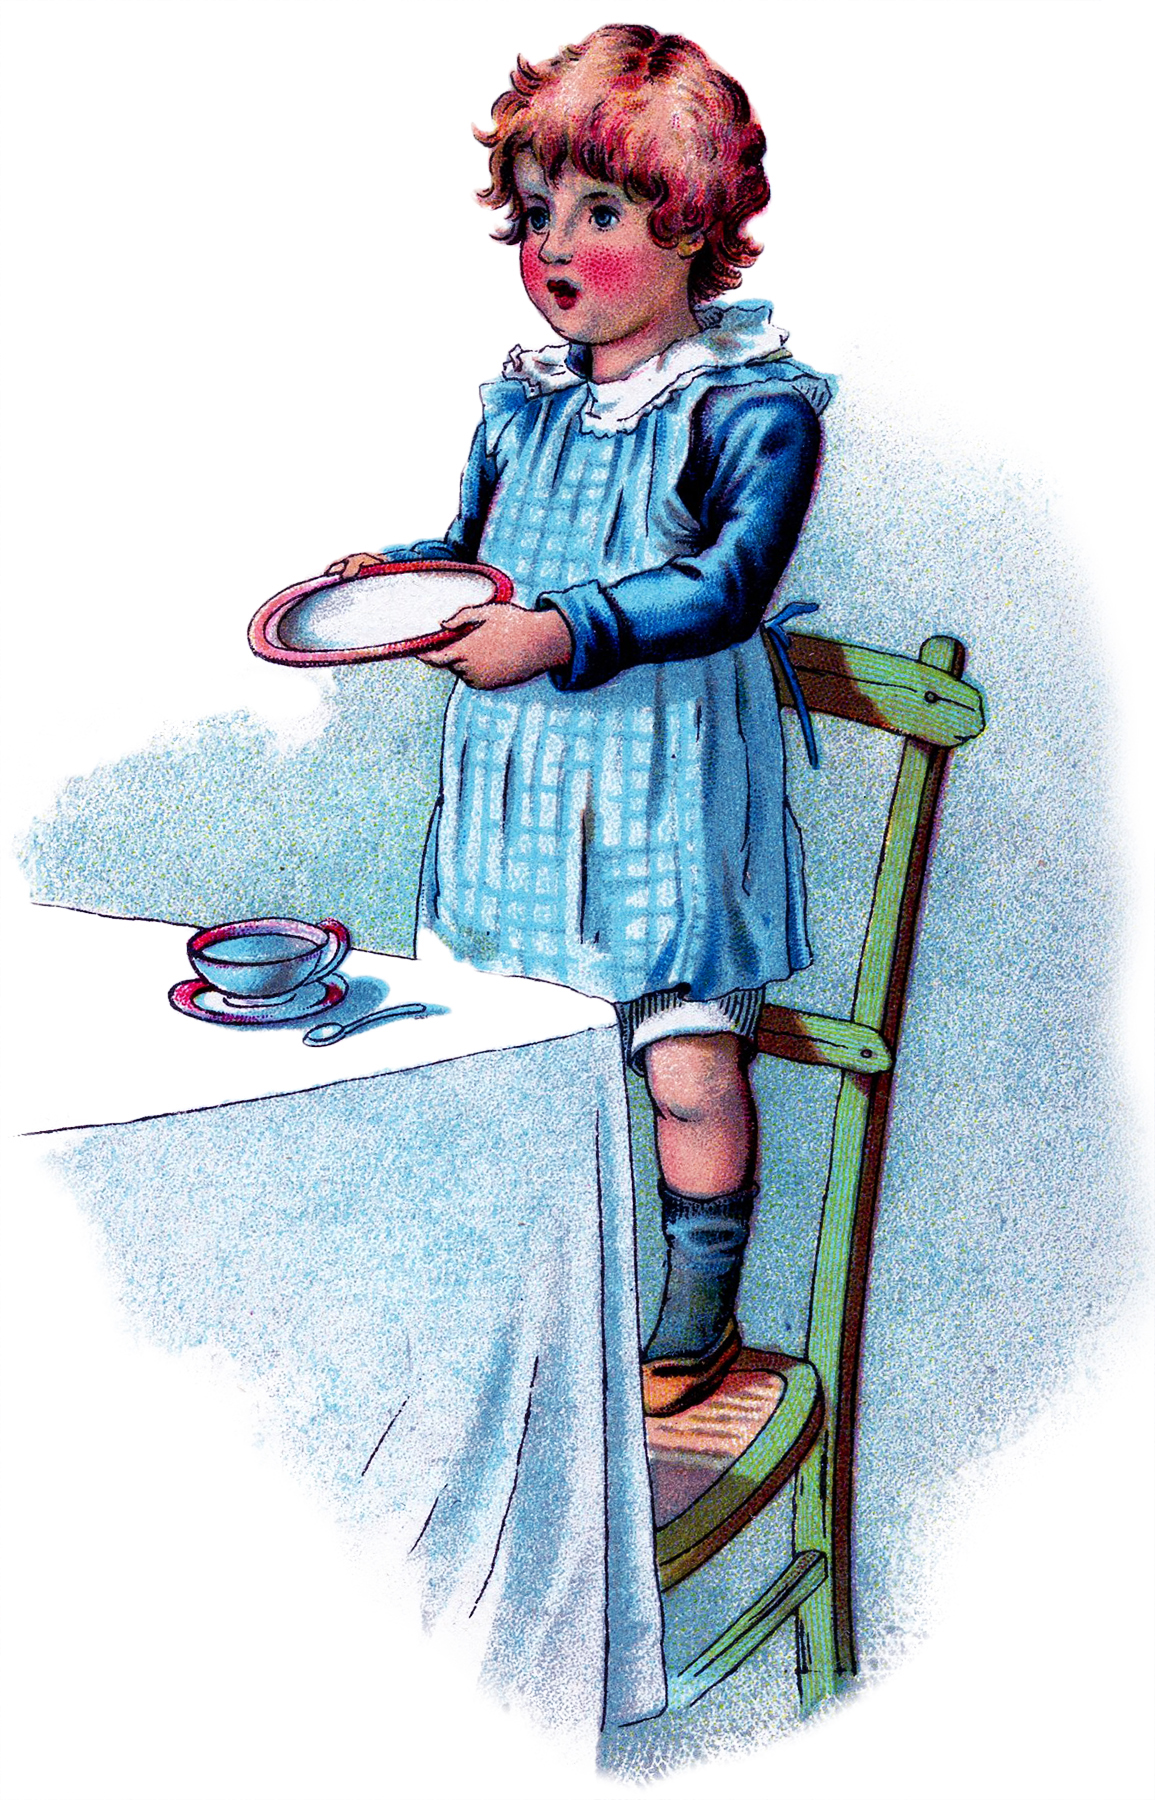 Vintage Hungry Child Image! - The Graphics Fairy